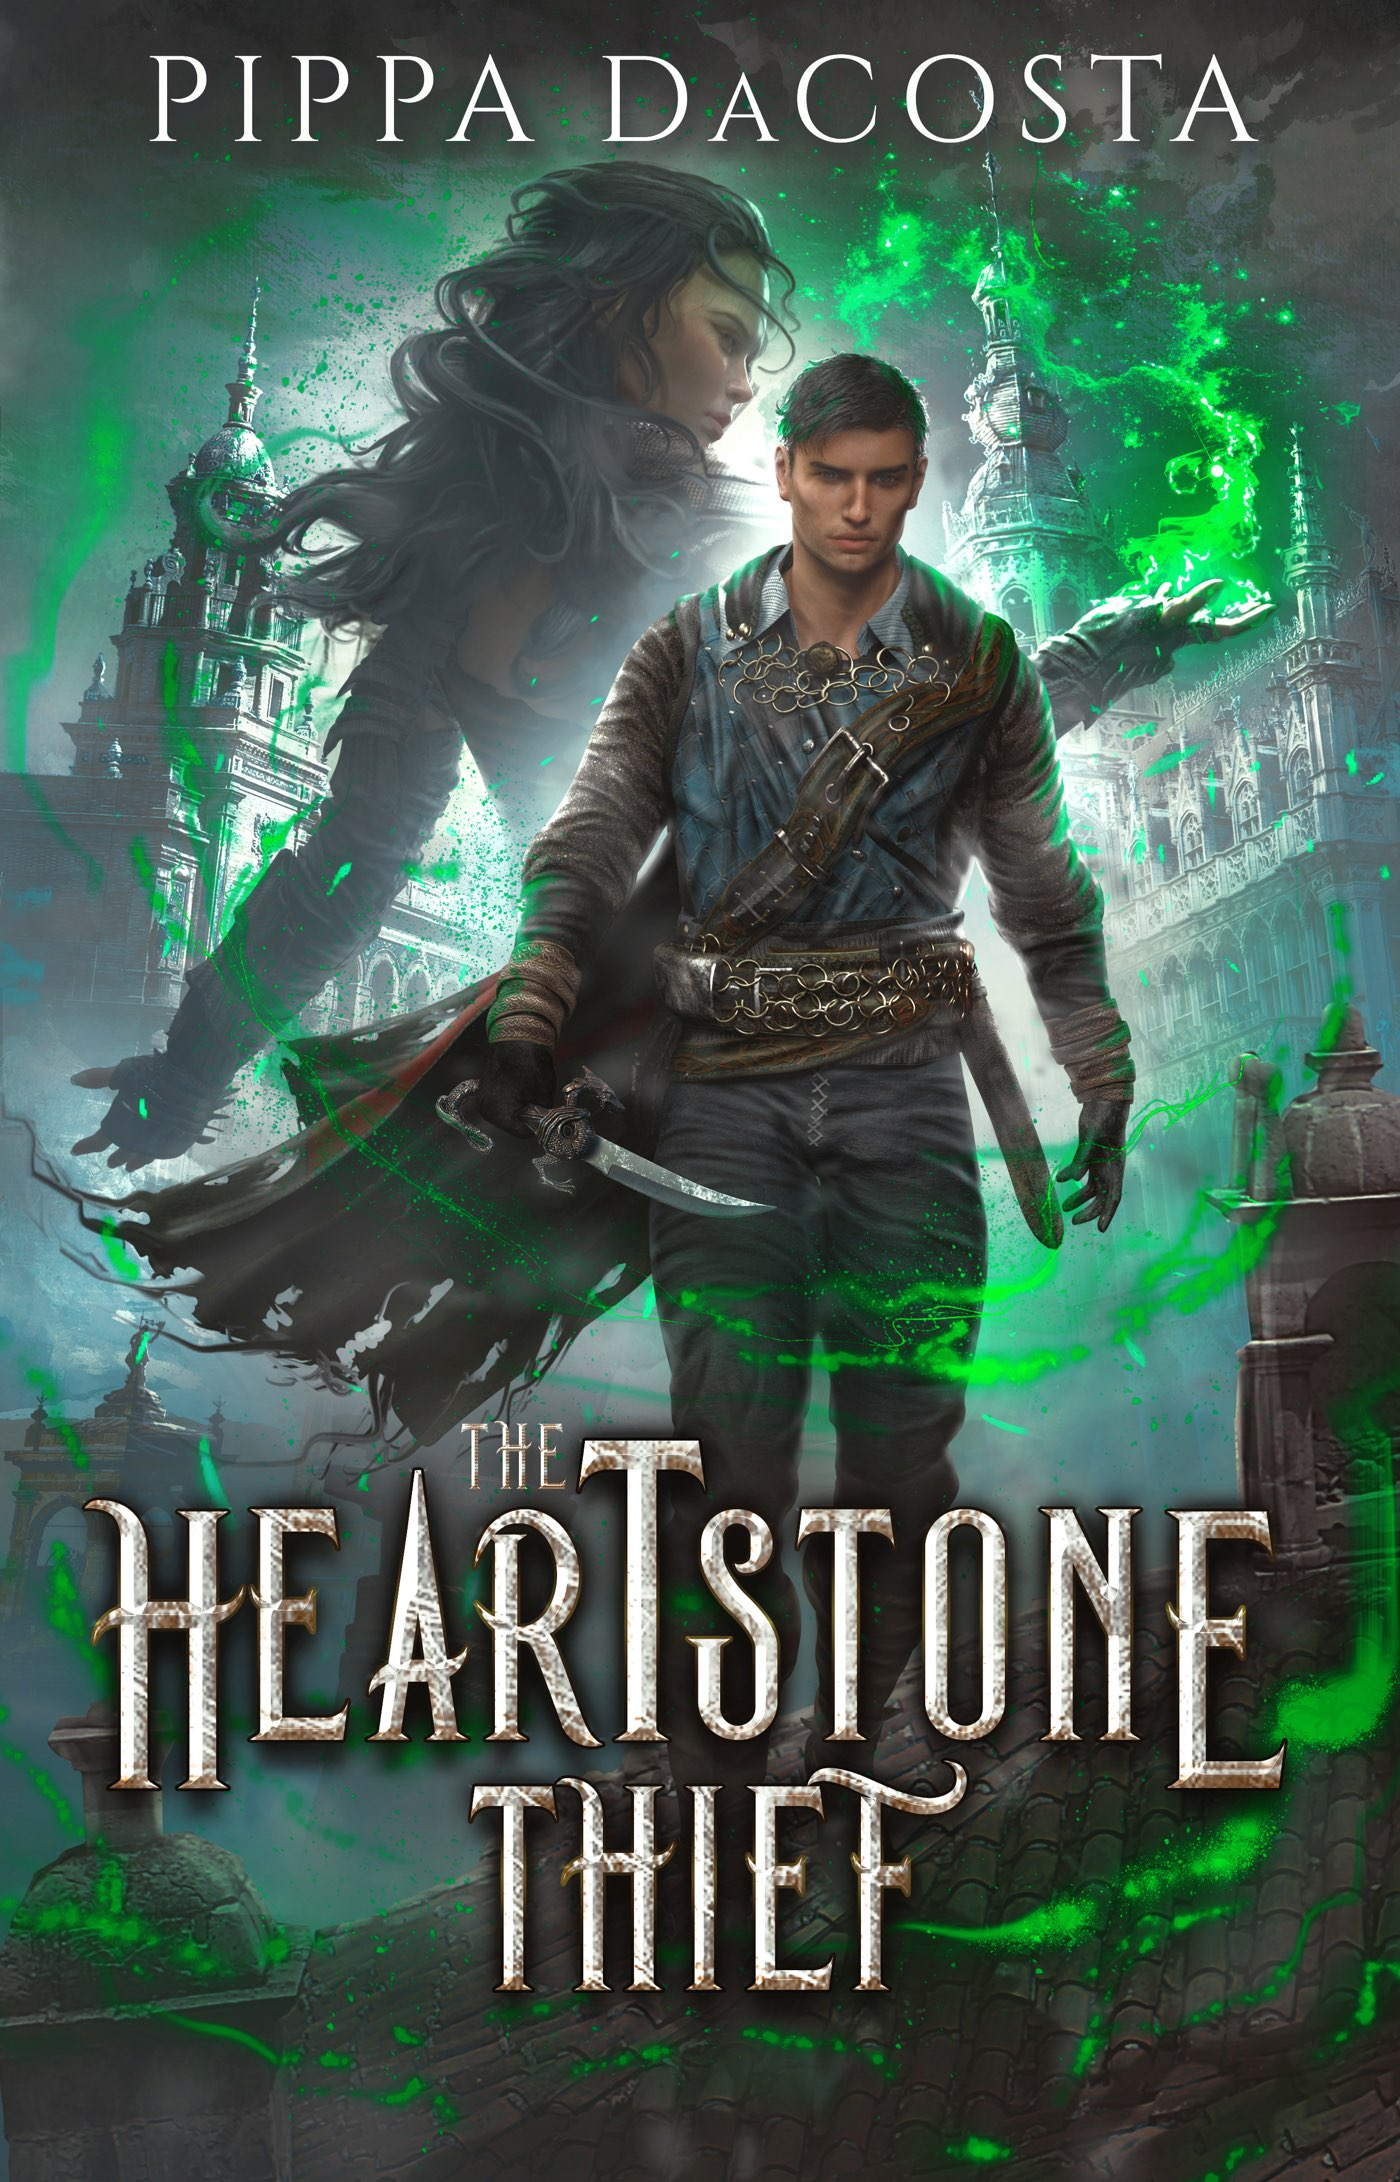 Heartstone Thief